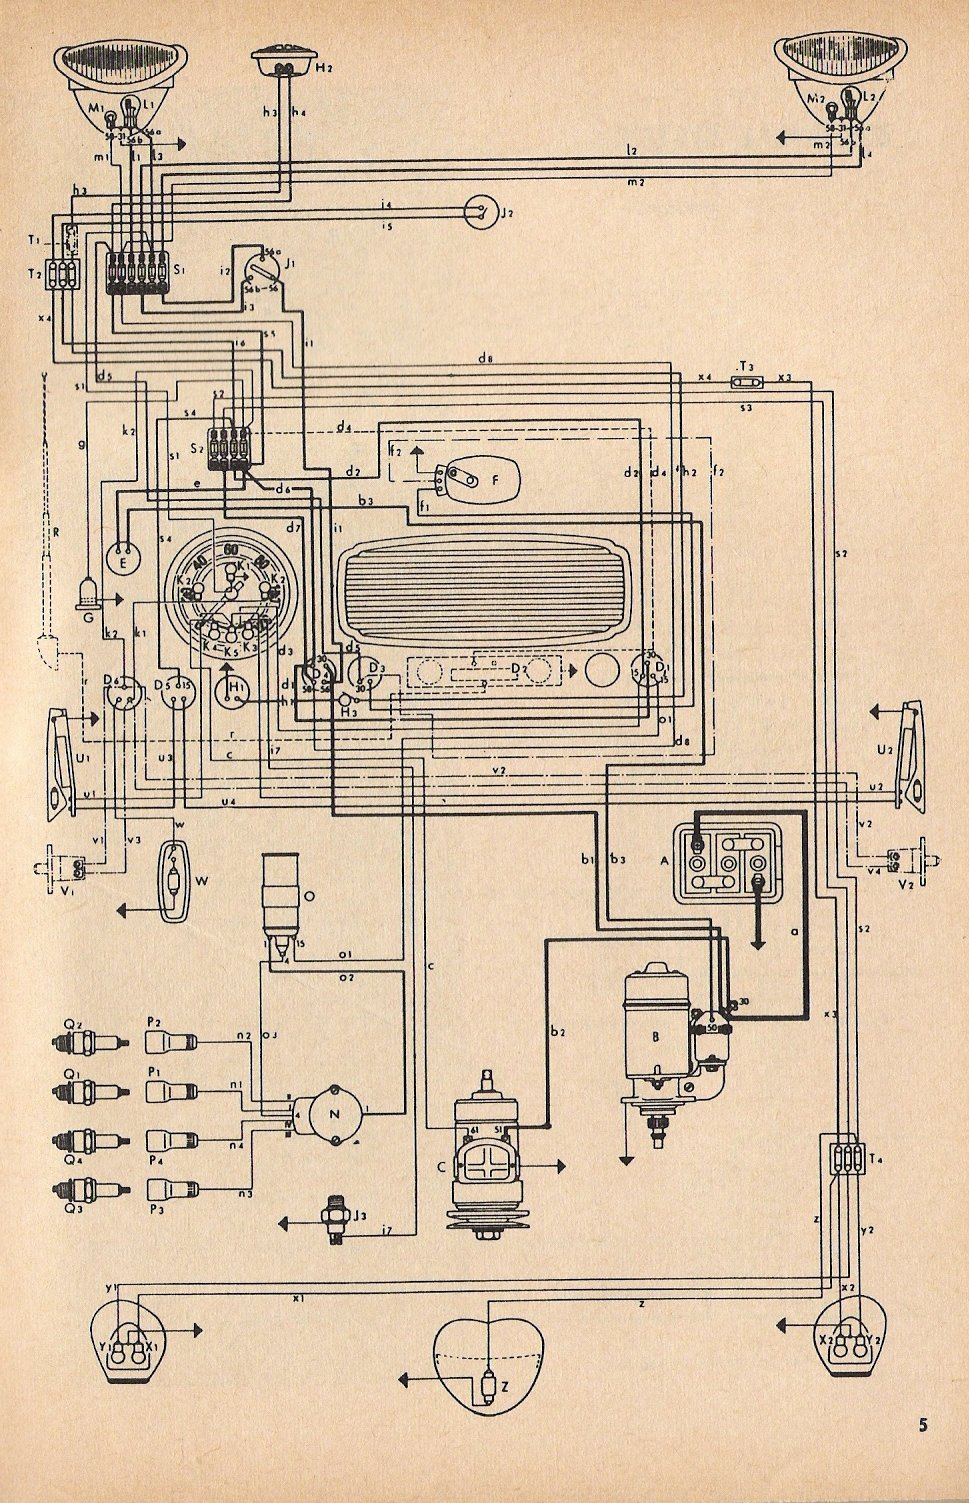 thesamba com type 1 wiring diagrams rh thesamba com VW Beetle Generator Wiring Diagram 1971 VW Super Beetle Wiring Diagram